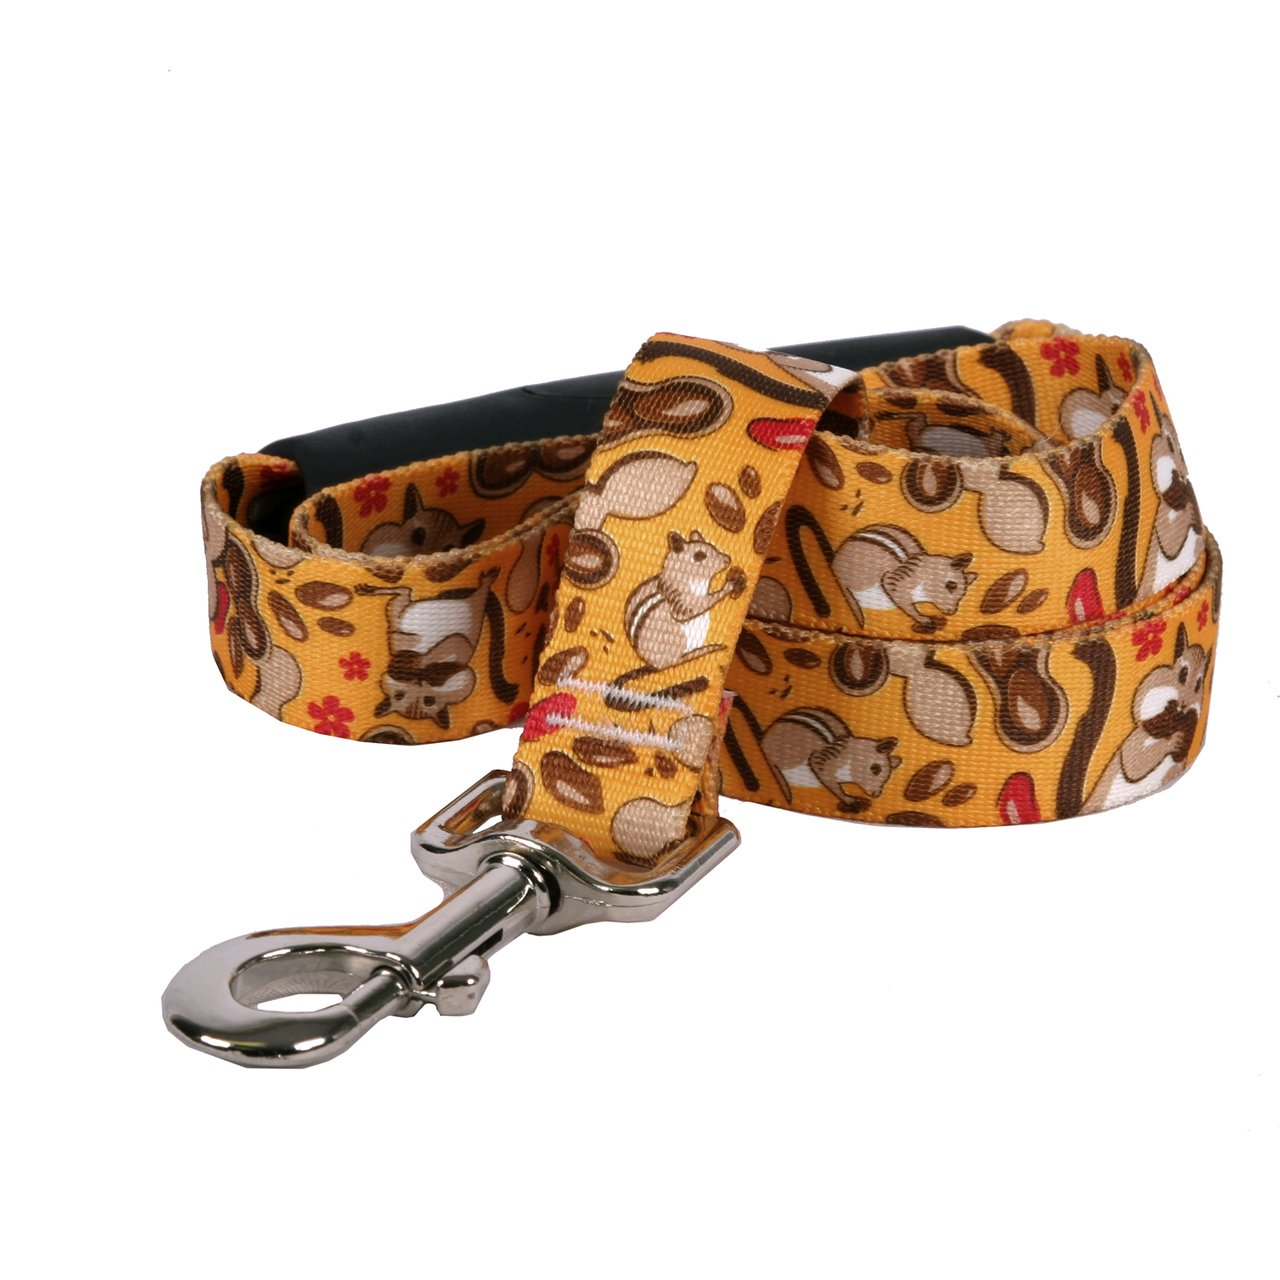 Yellow Dog Design Chipmunks Ez-Grip Dog Leash With Comfort Handle Large CHIP121